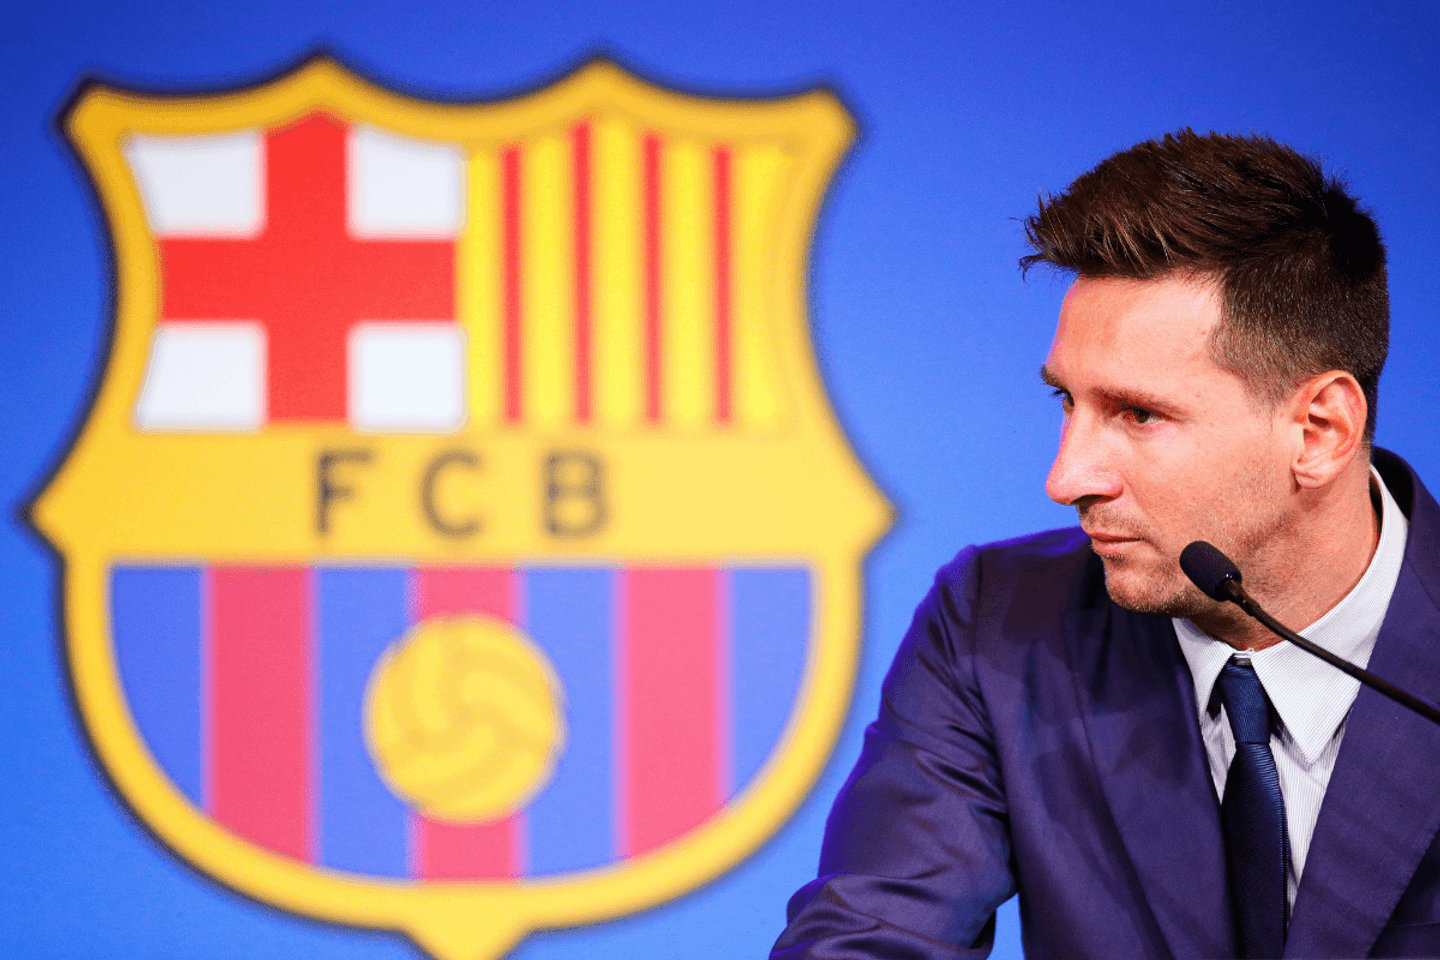 Lionel Messi going to France after Barcelona exit